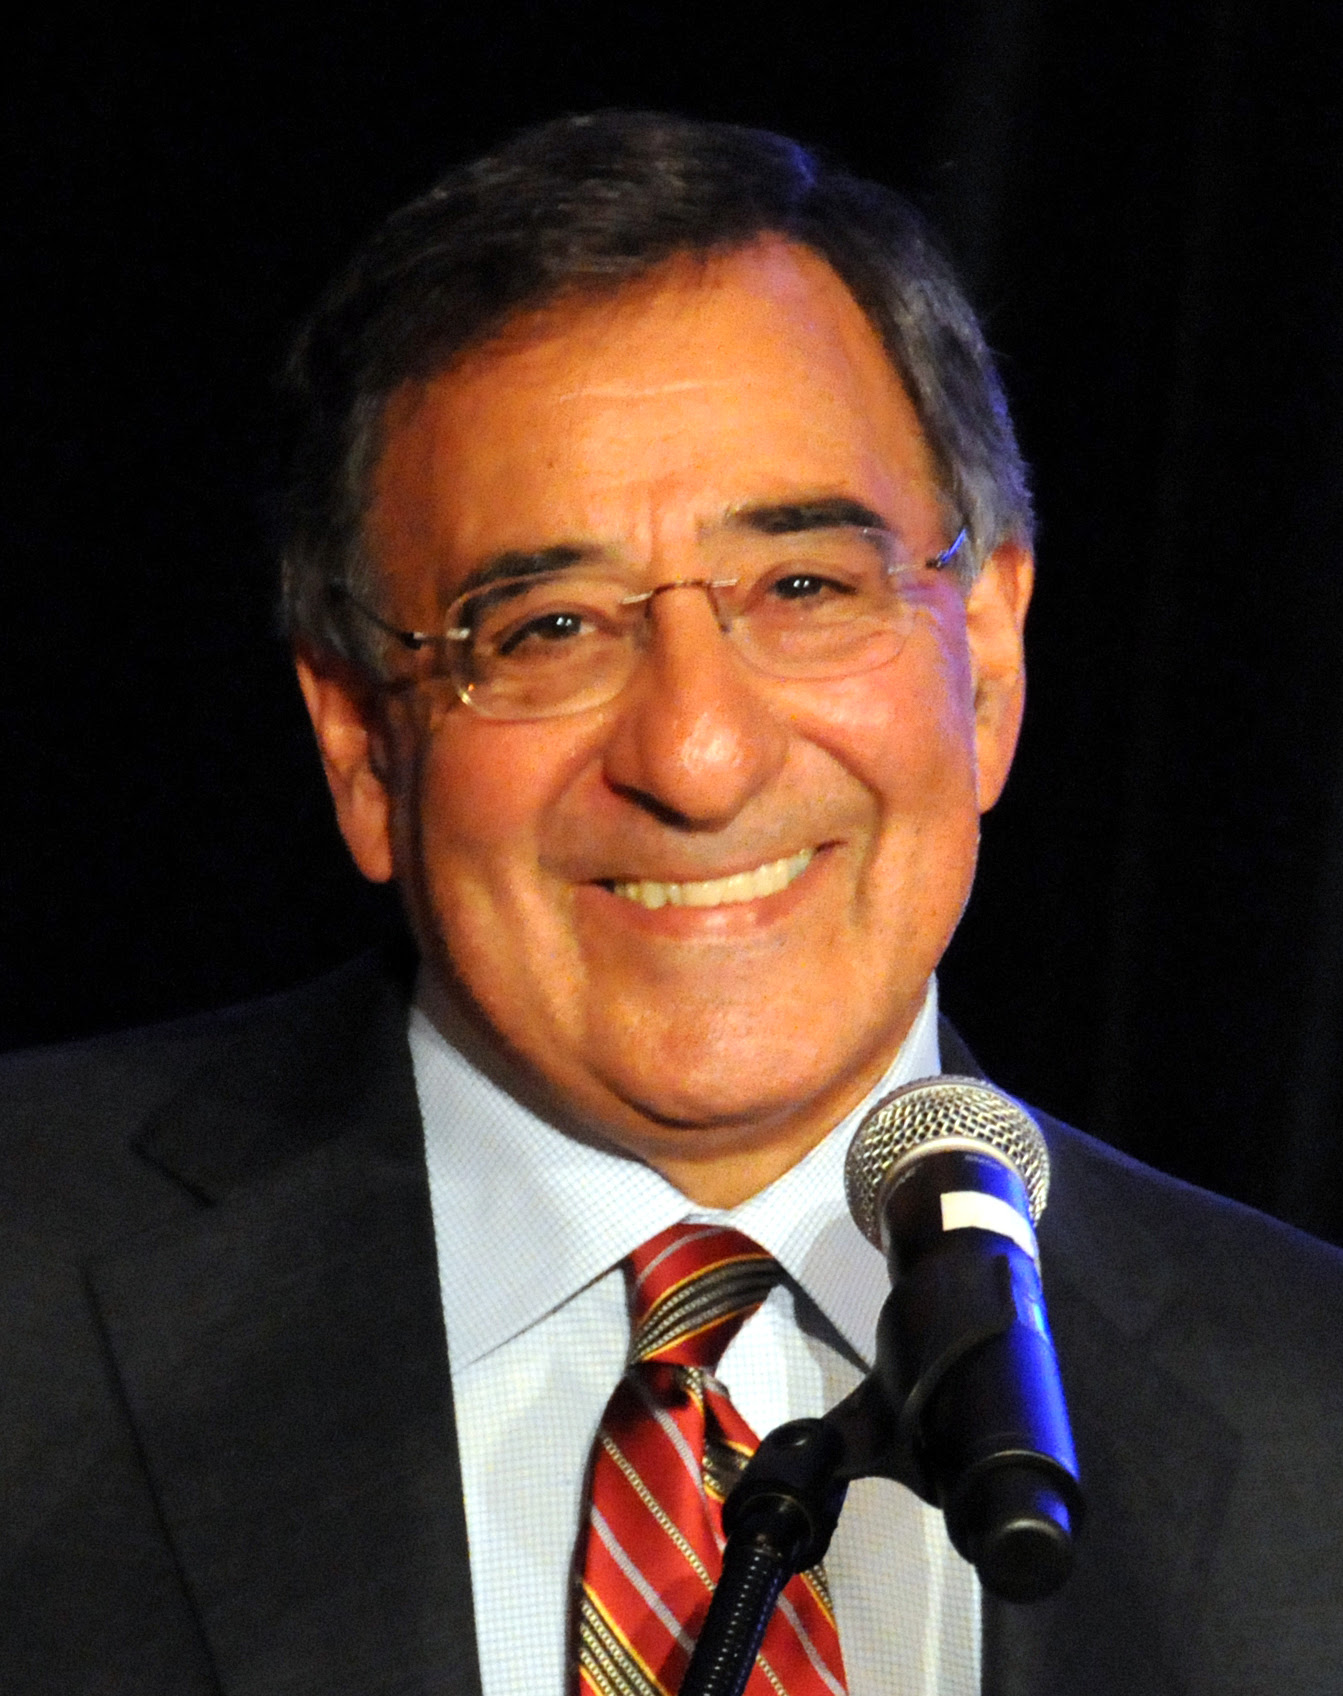 http://upload.wikimedia.org/wikipedia/commons/a/a6/Leon_Panetta_speaking_crop.jpg